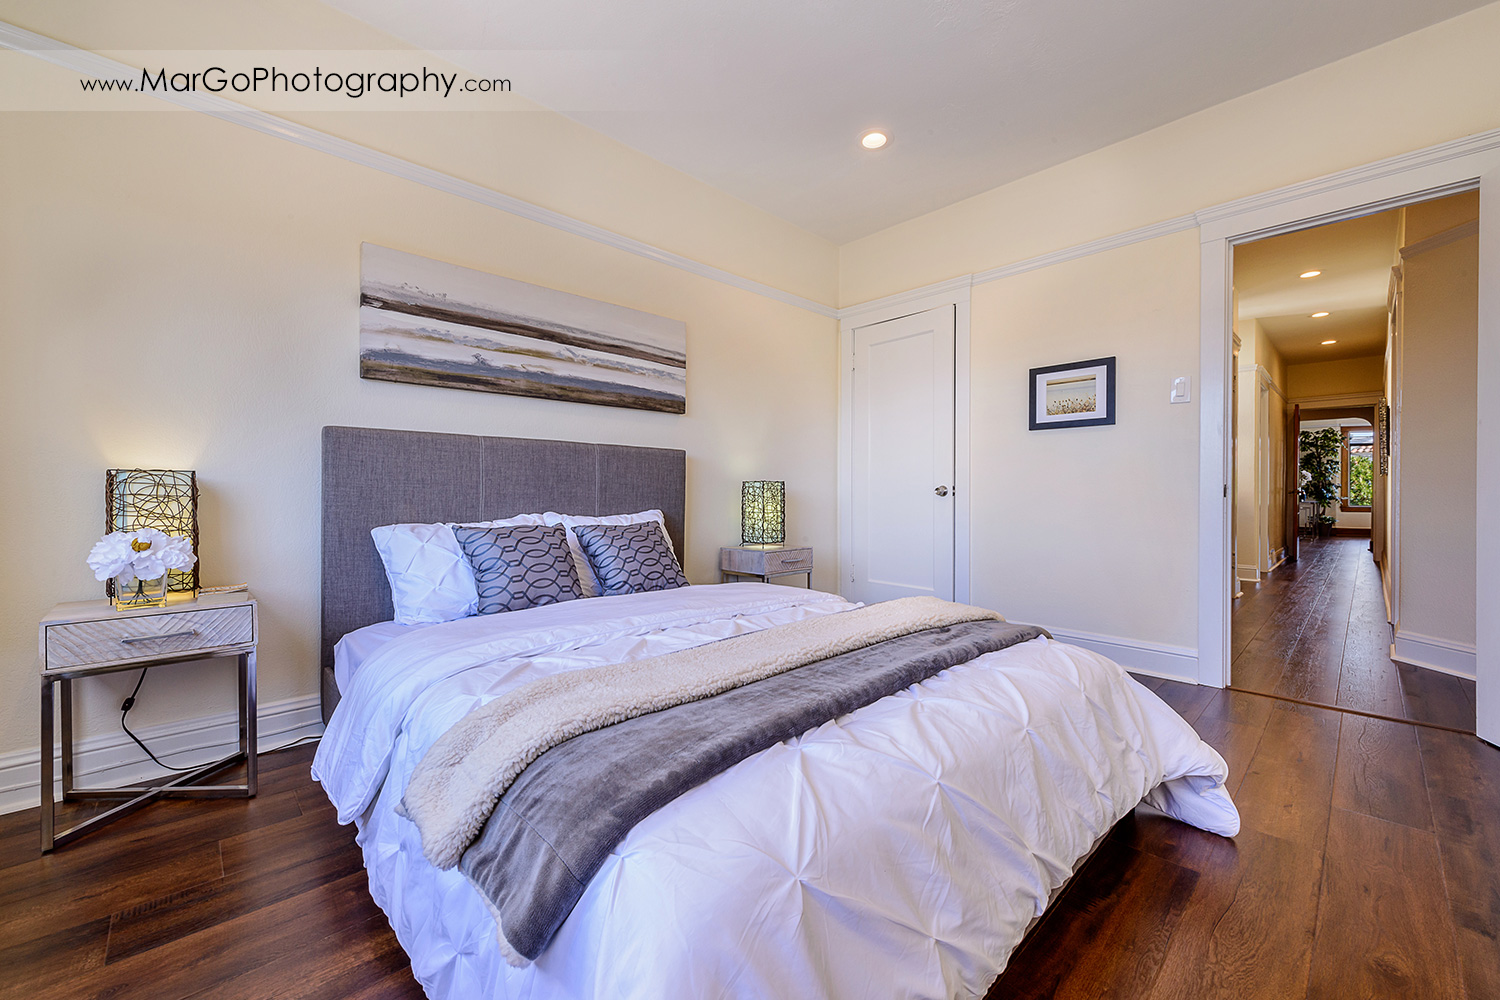 San Francisco house bedroom with hall view - real estate photography